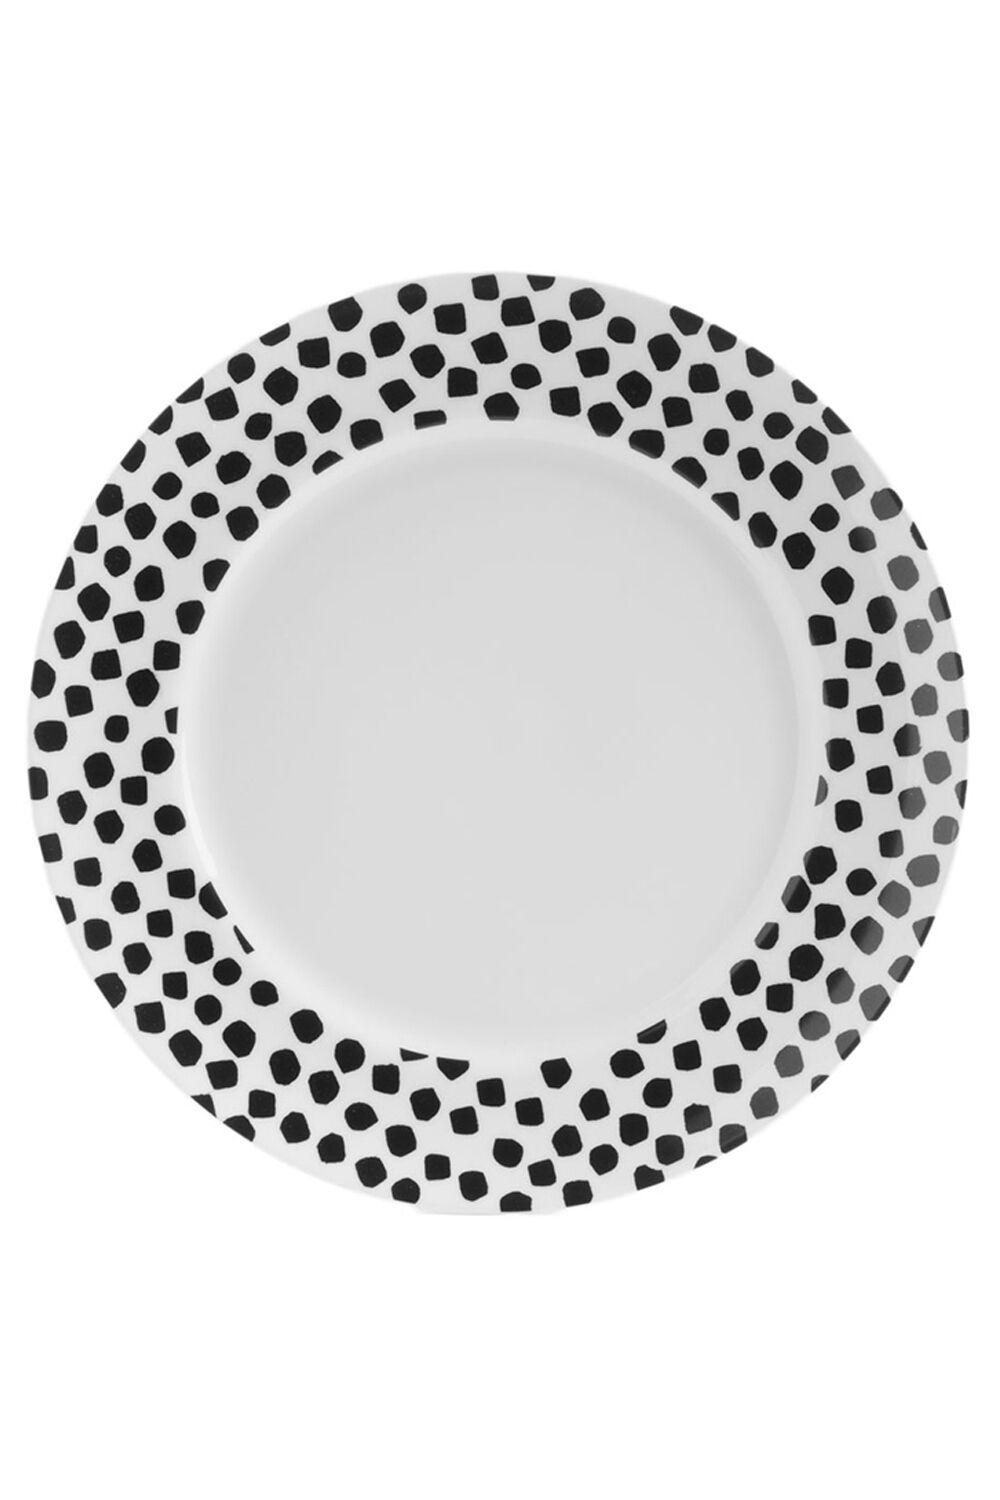 DOTS DINNER PLATE  sc 1 st  Kelly Wearstler & DOTS DINNER PLATE High End Luxury Design Furniture and Decor ...